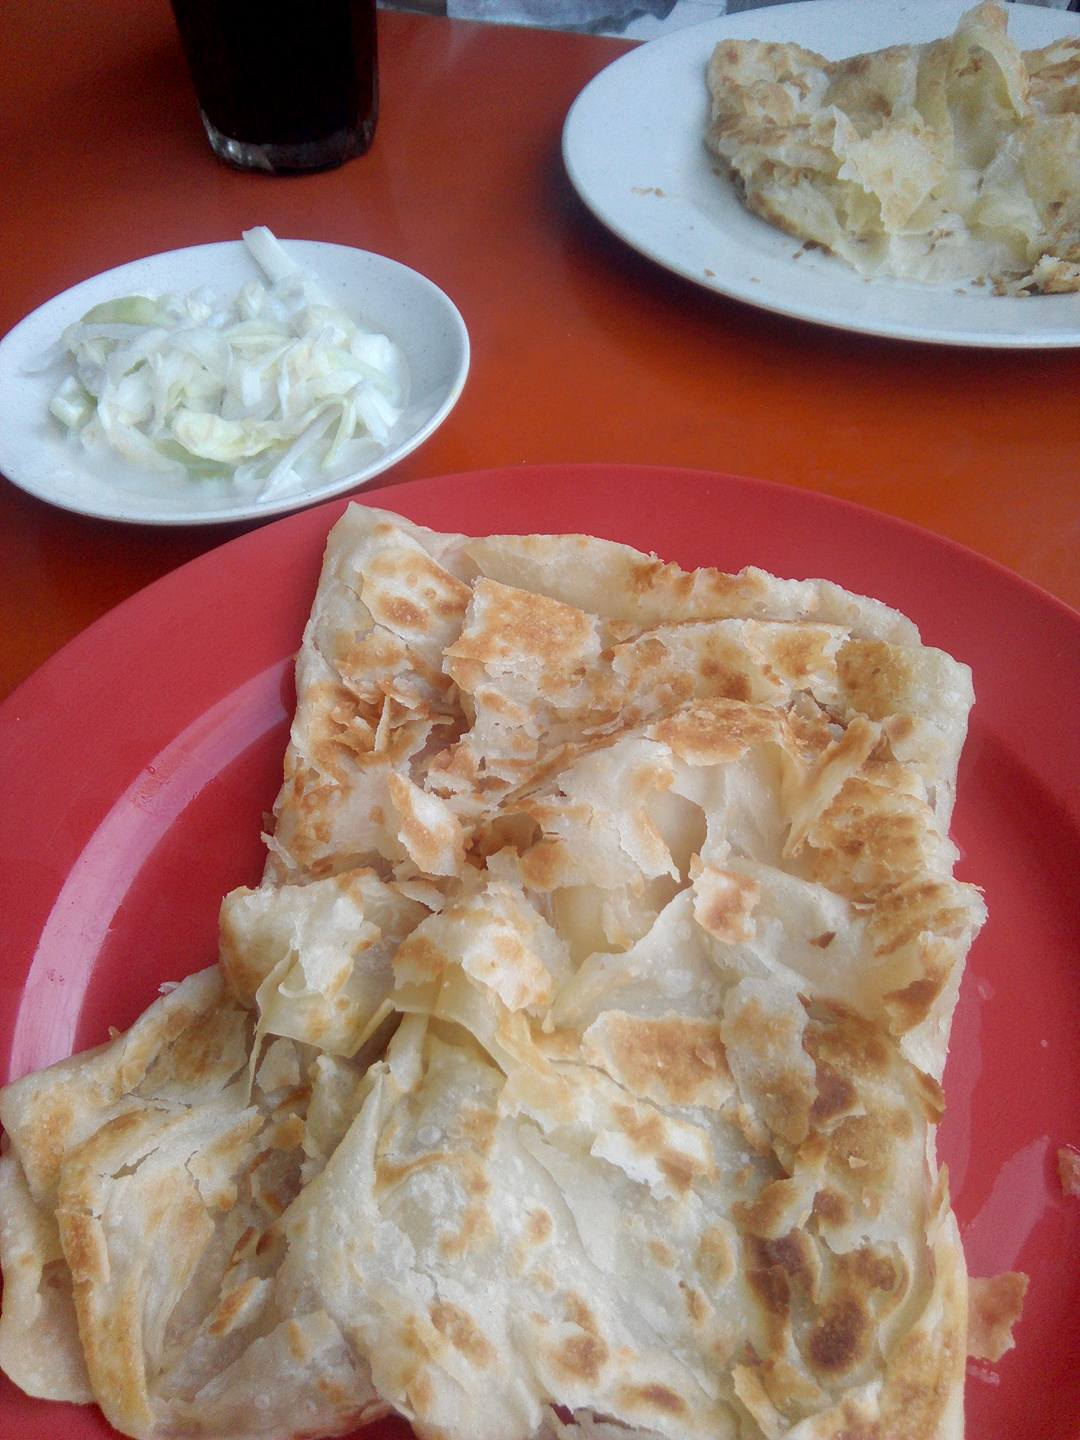 Today's breakfast: roti canai